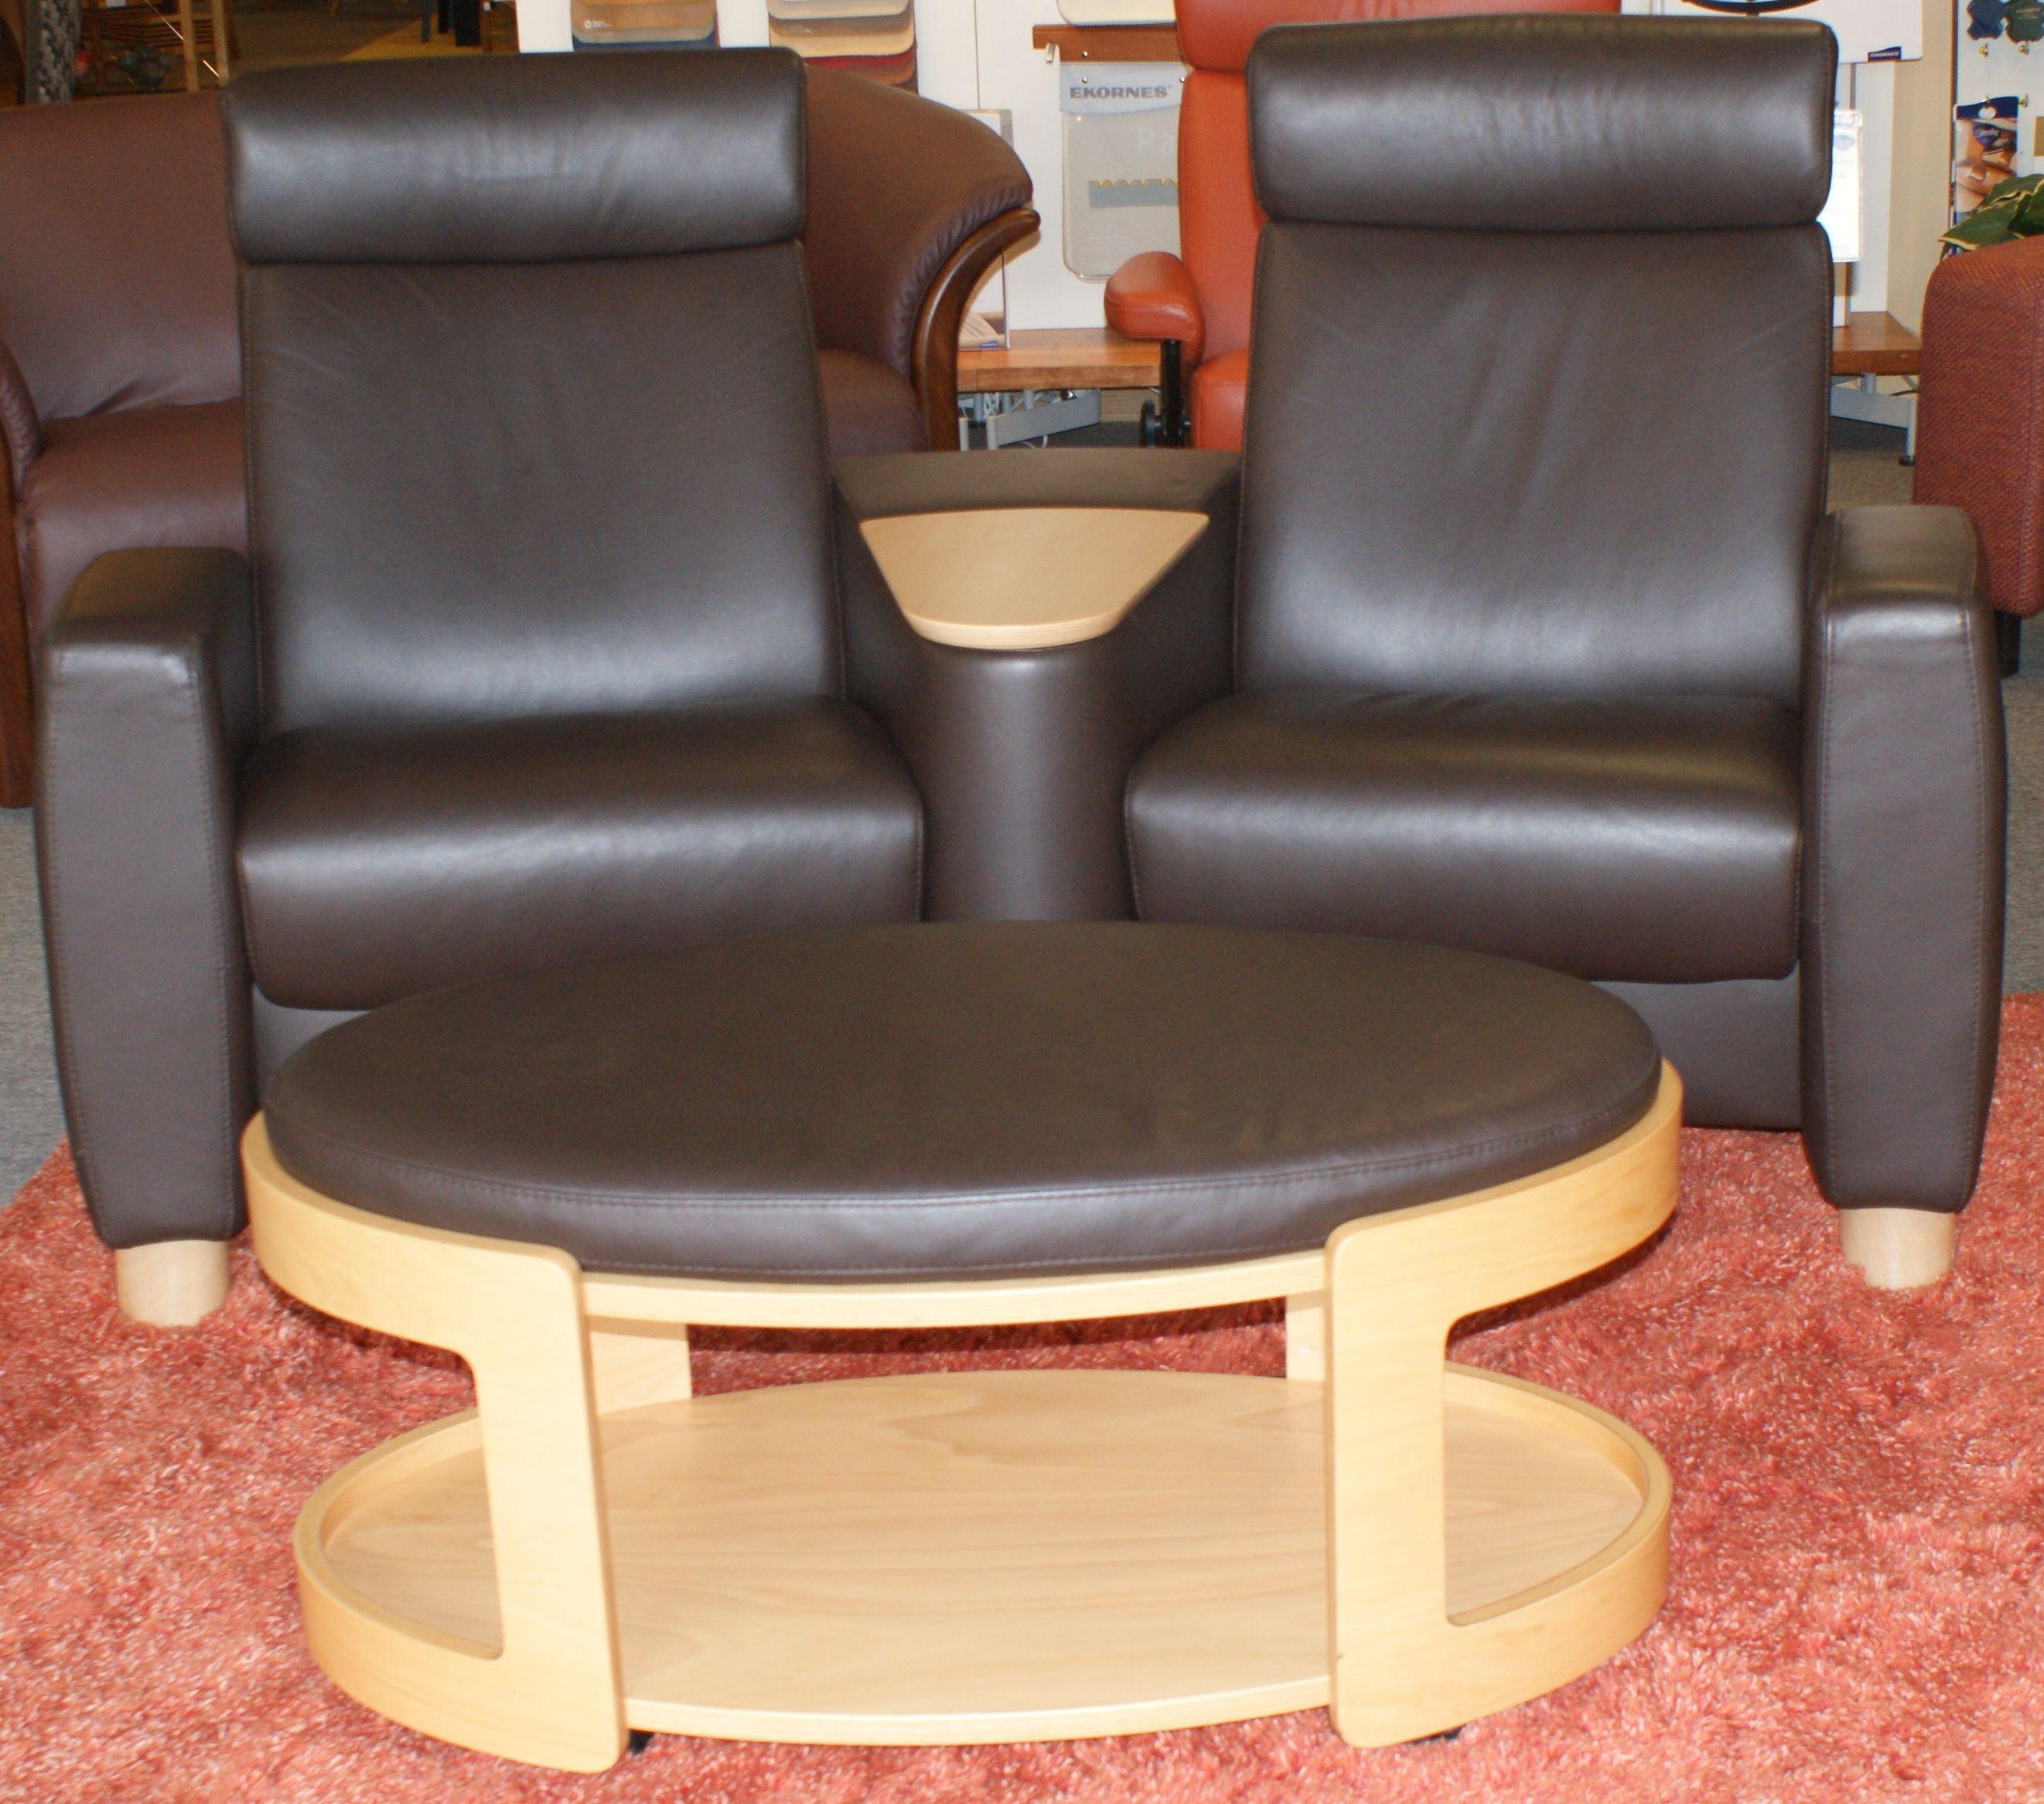 Stressless Arion Home Theater Seating With Oval Ottoman Paloma